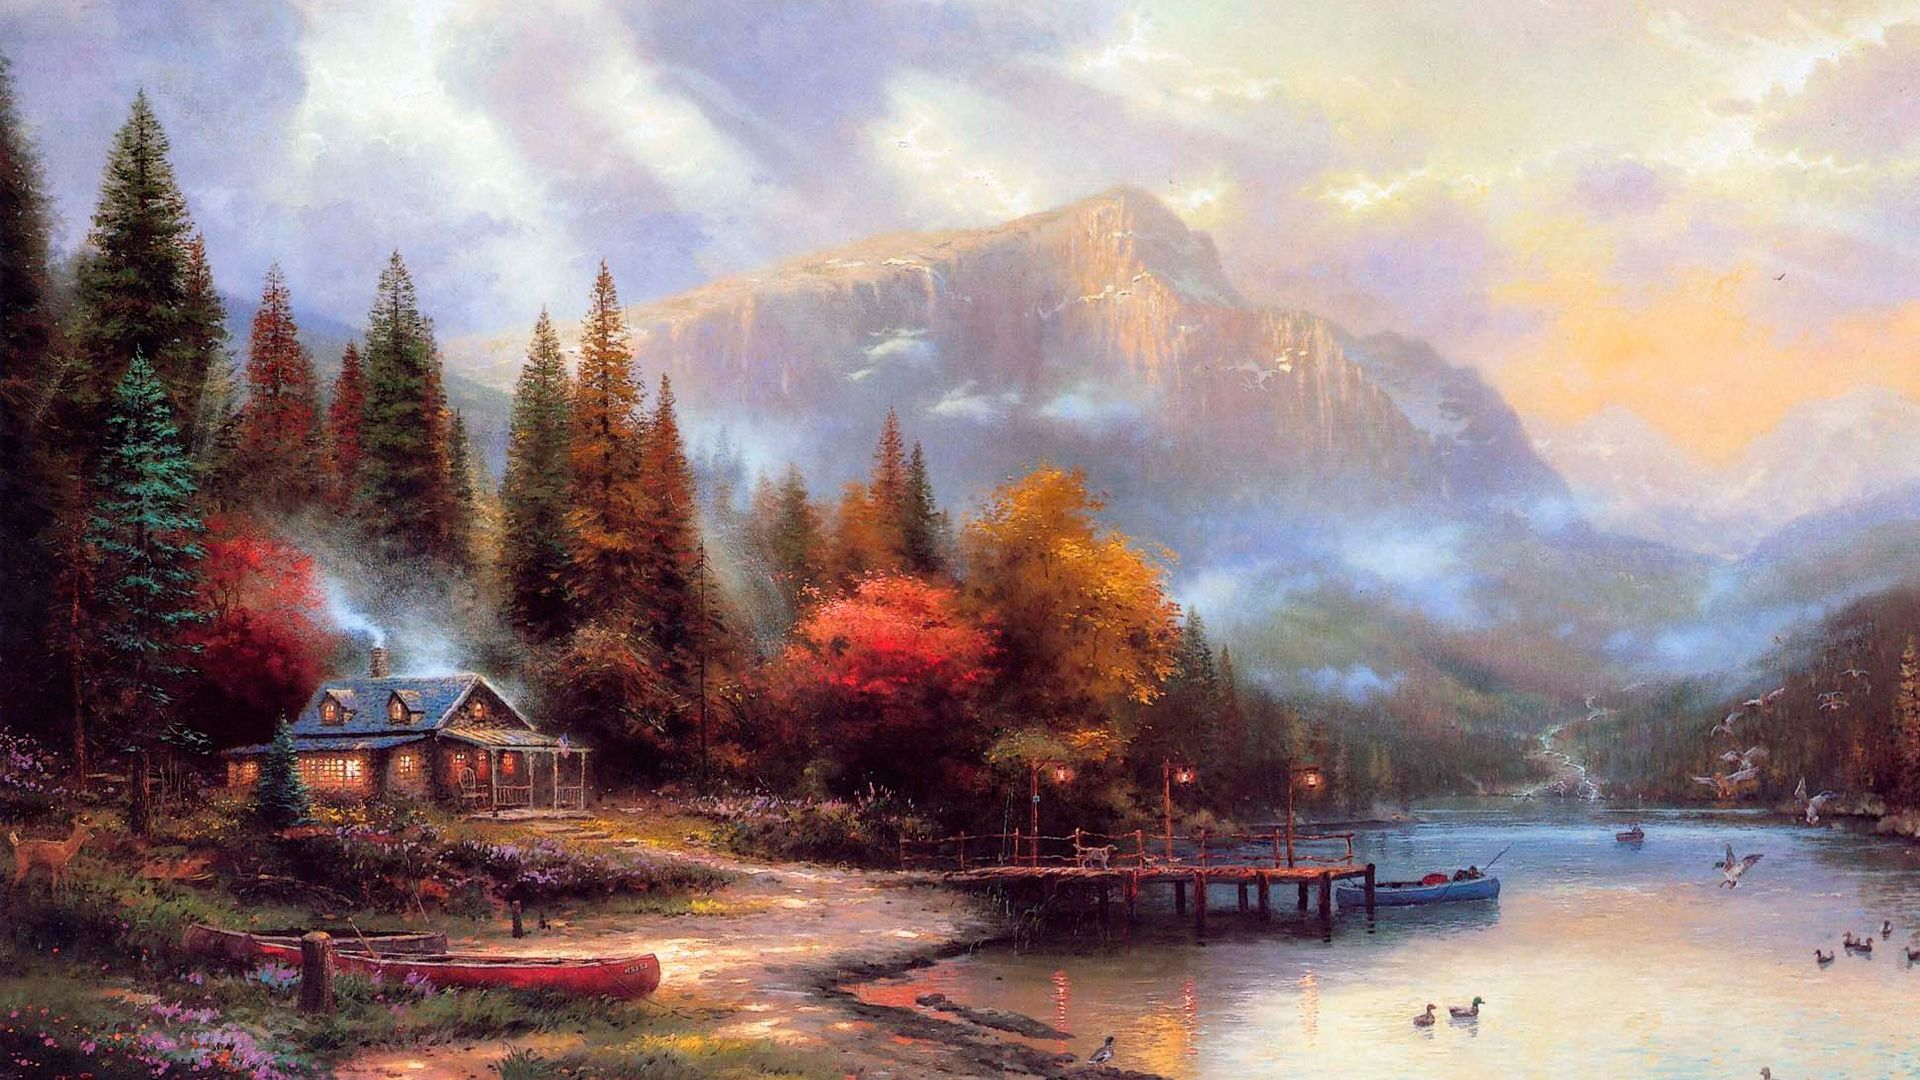 Best images about the painter of light thomas kinkade on hd hd wallpaper best images about the painter of light thomas kinkade on voltagebd Gallery